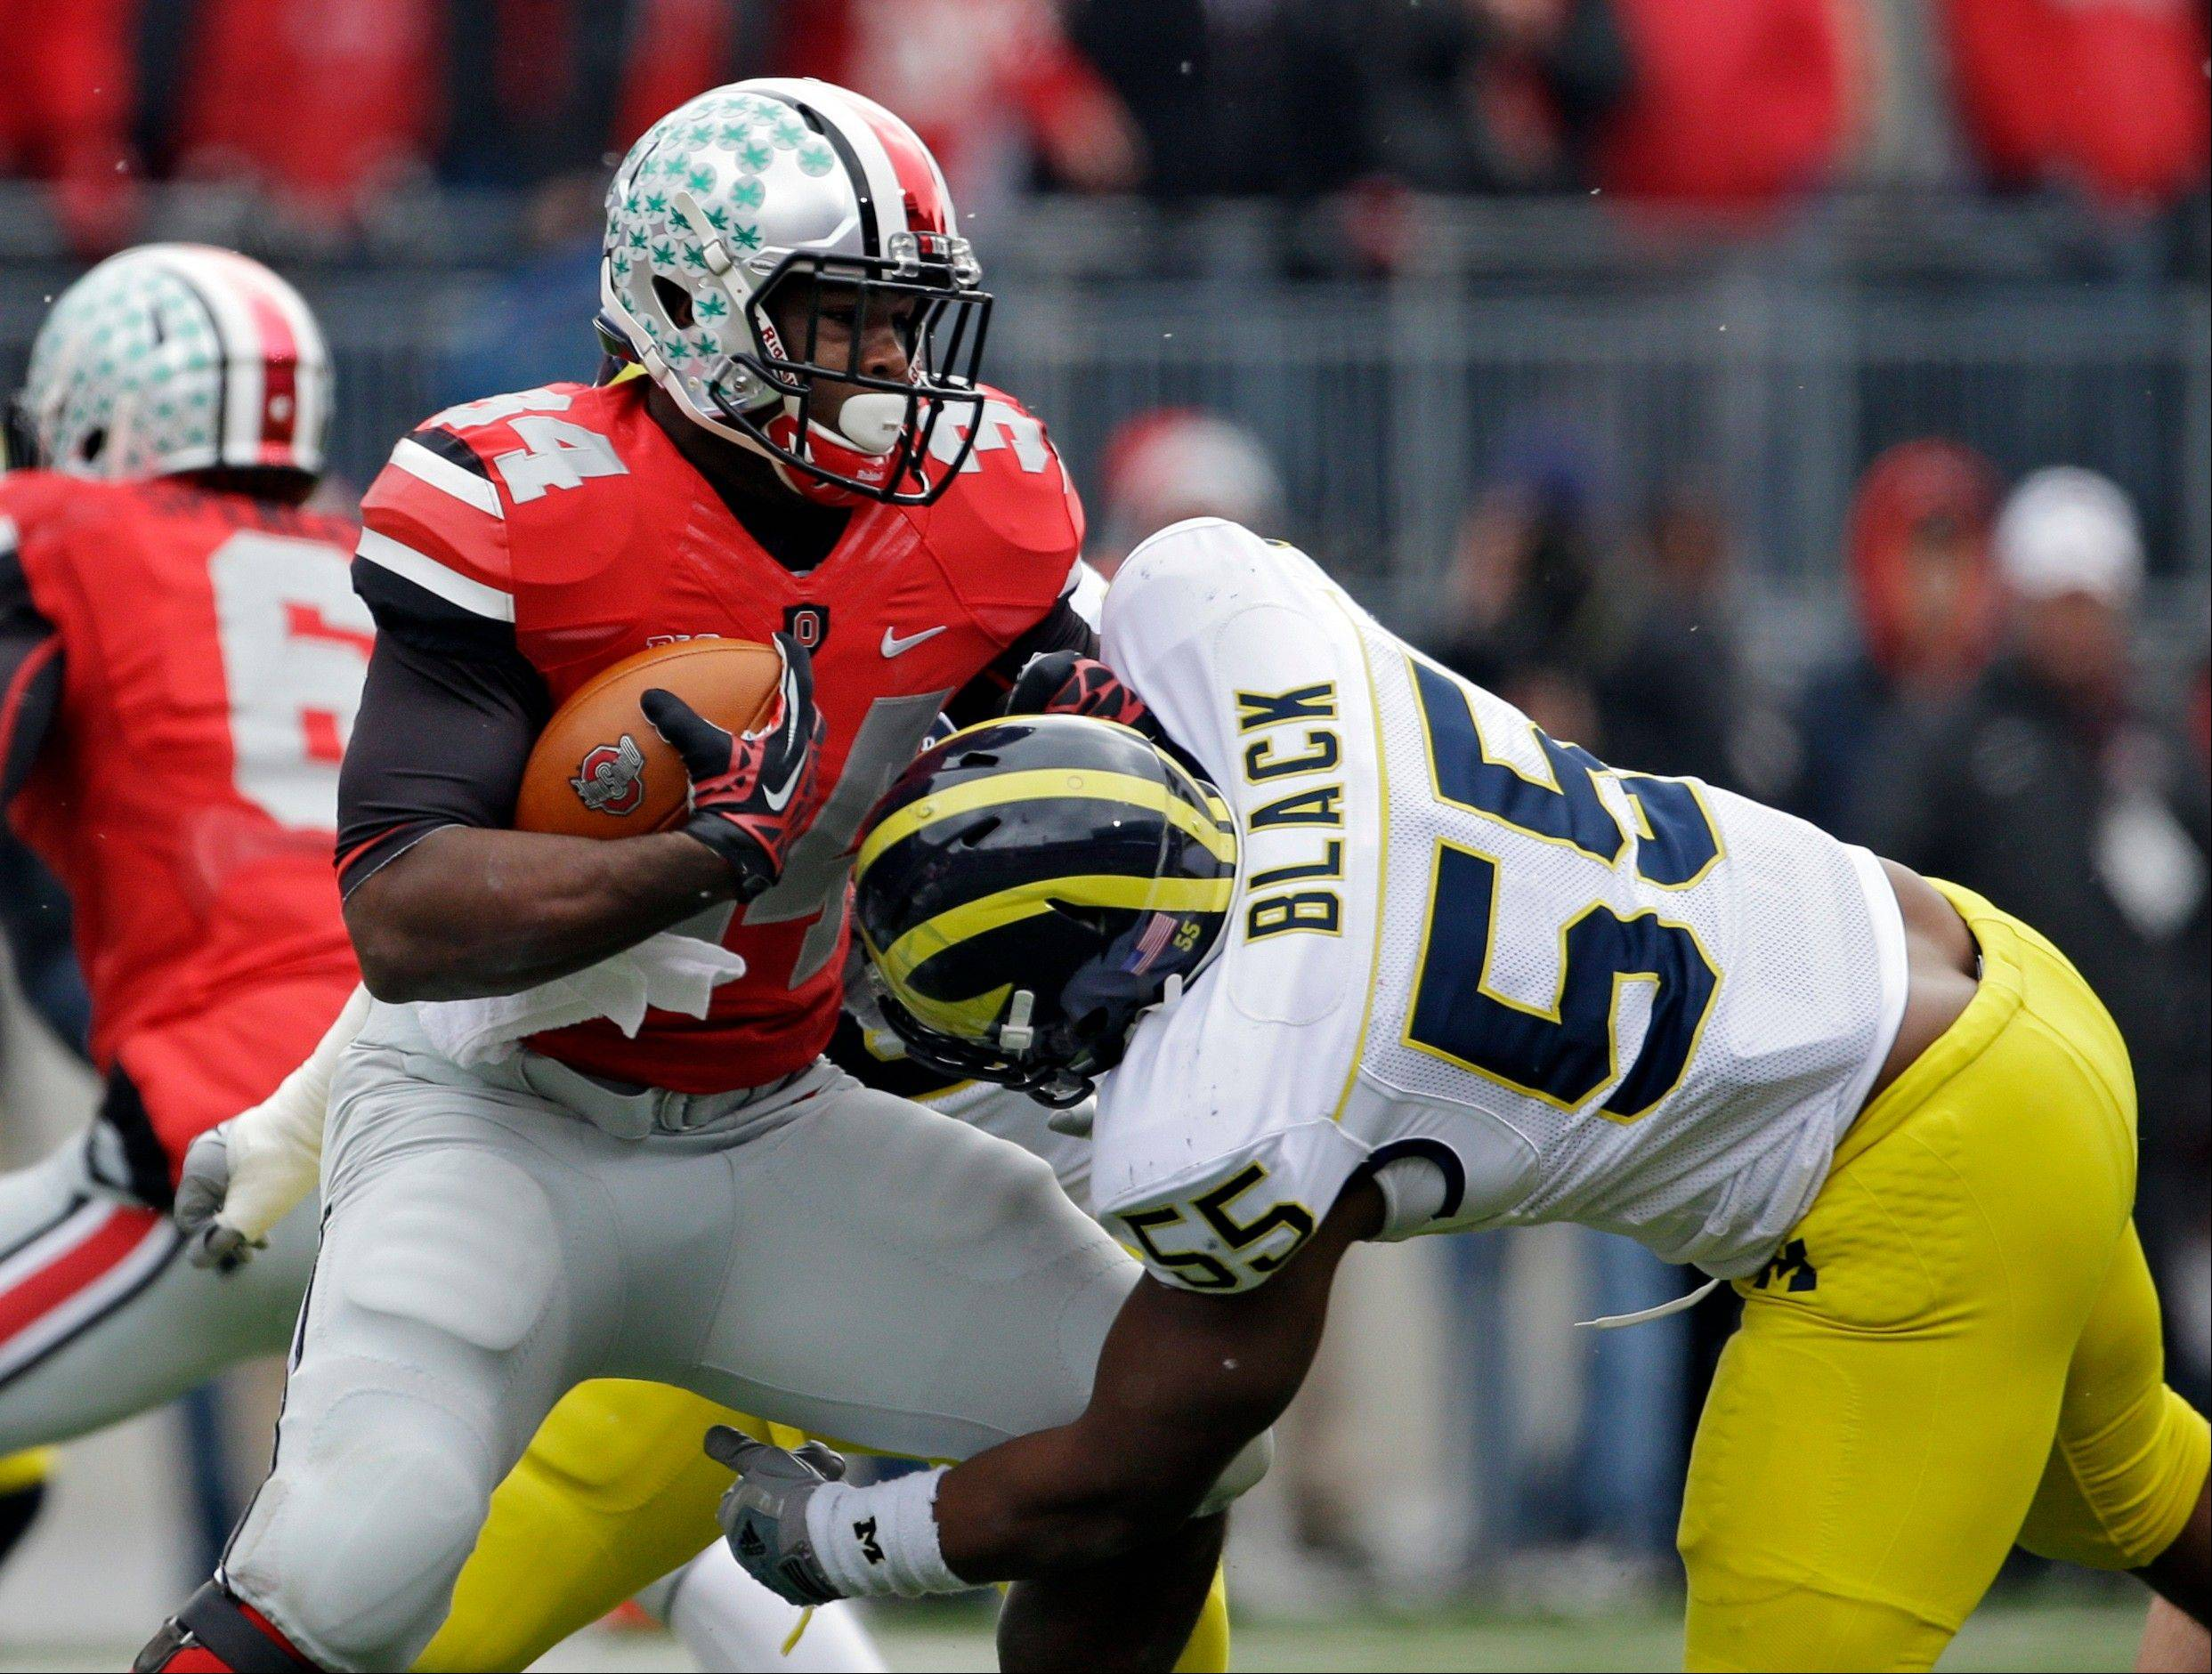 After a three-game suspension, Carlos Hyde returns to No. 4 Ohio State�s backfield, creating a glut of players all seeking carries for the Buckeyes when they play Florida A&M on Saturday.